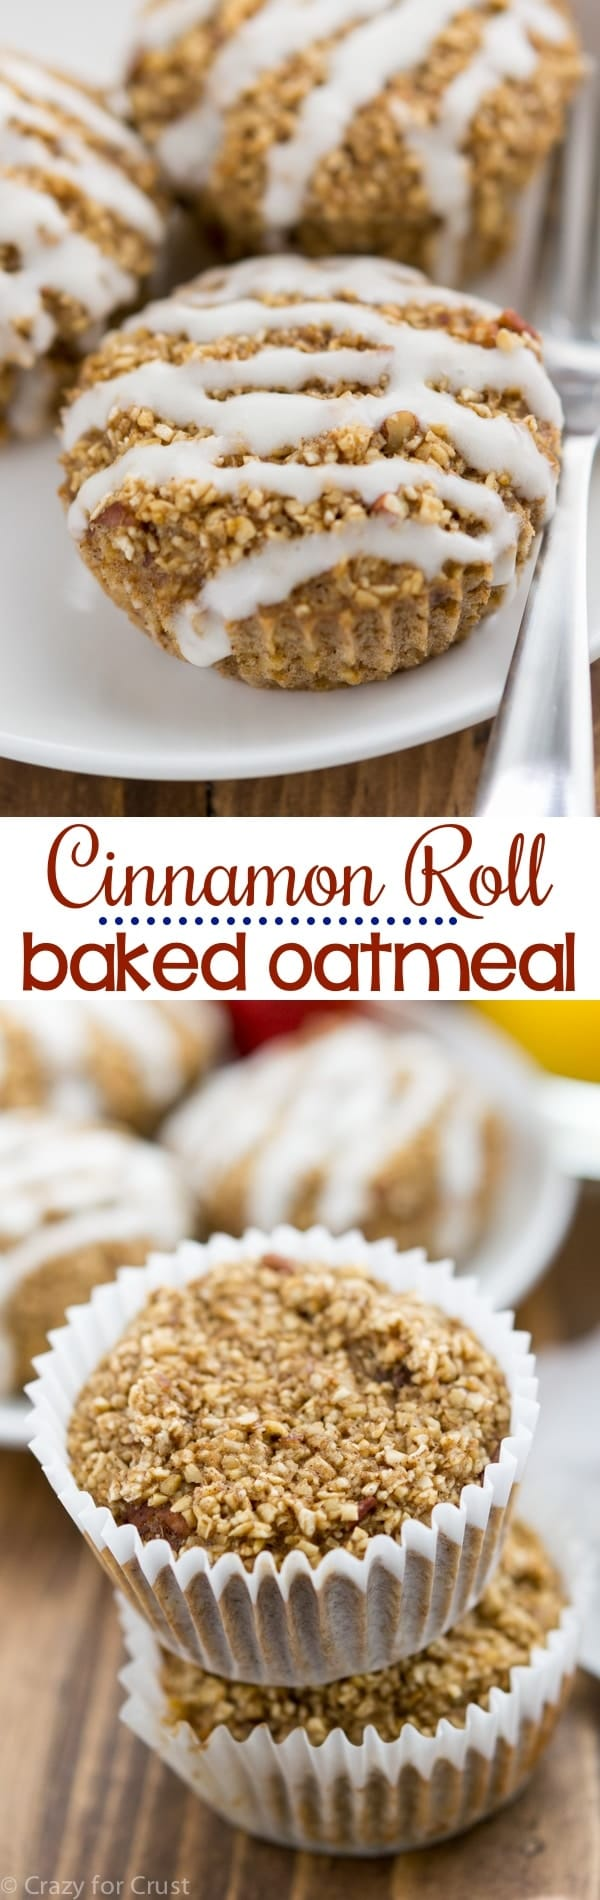 Cinnamon Roll Baked Oatmeal Muffins are an easy and healthier breakfast recipe. Baked oatmeal is always delicious, but turn them into baked oatmeal muffins and they're perfect for breakfast or snack - and the kids will love them.